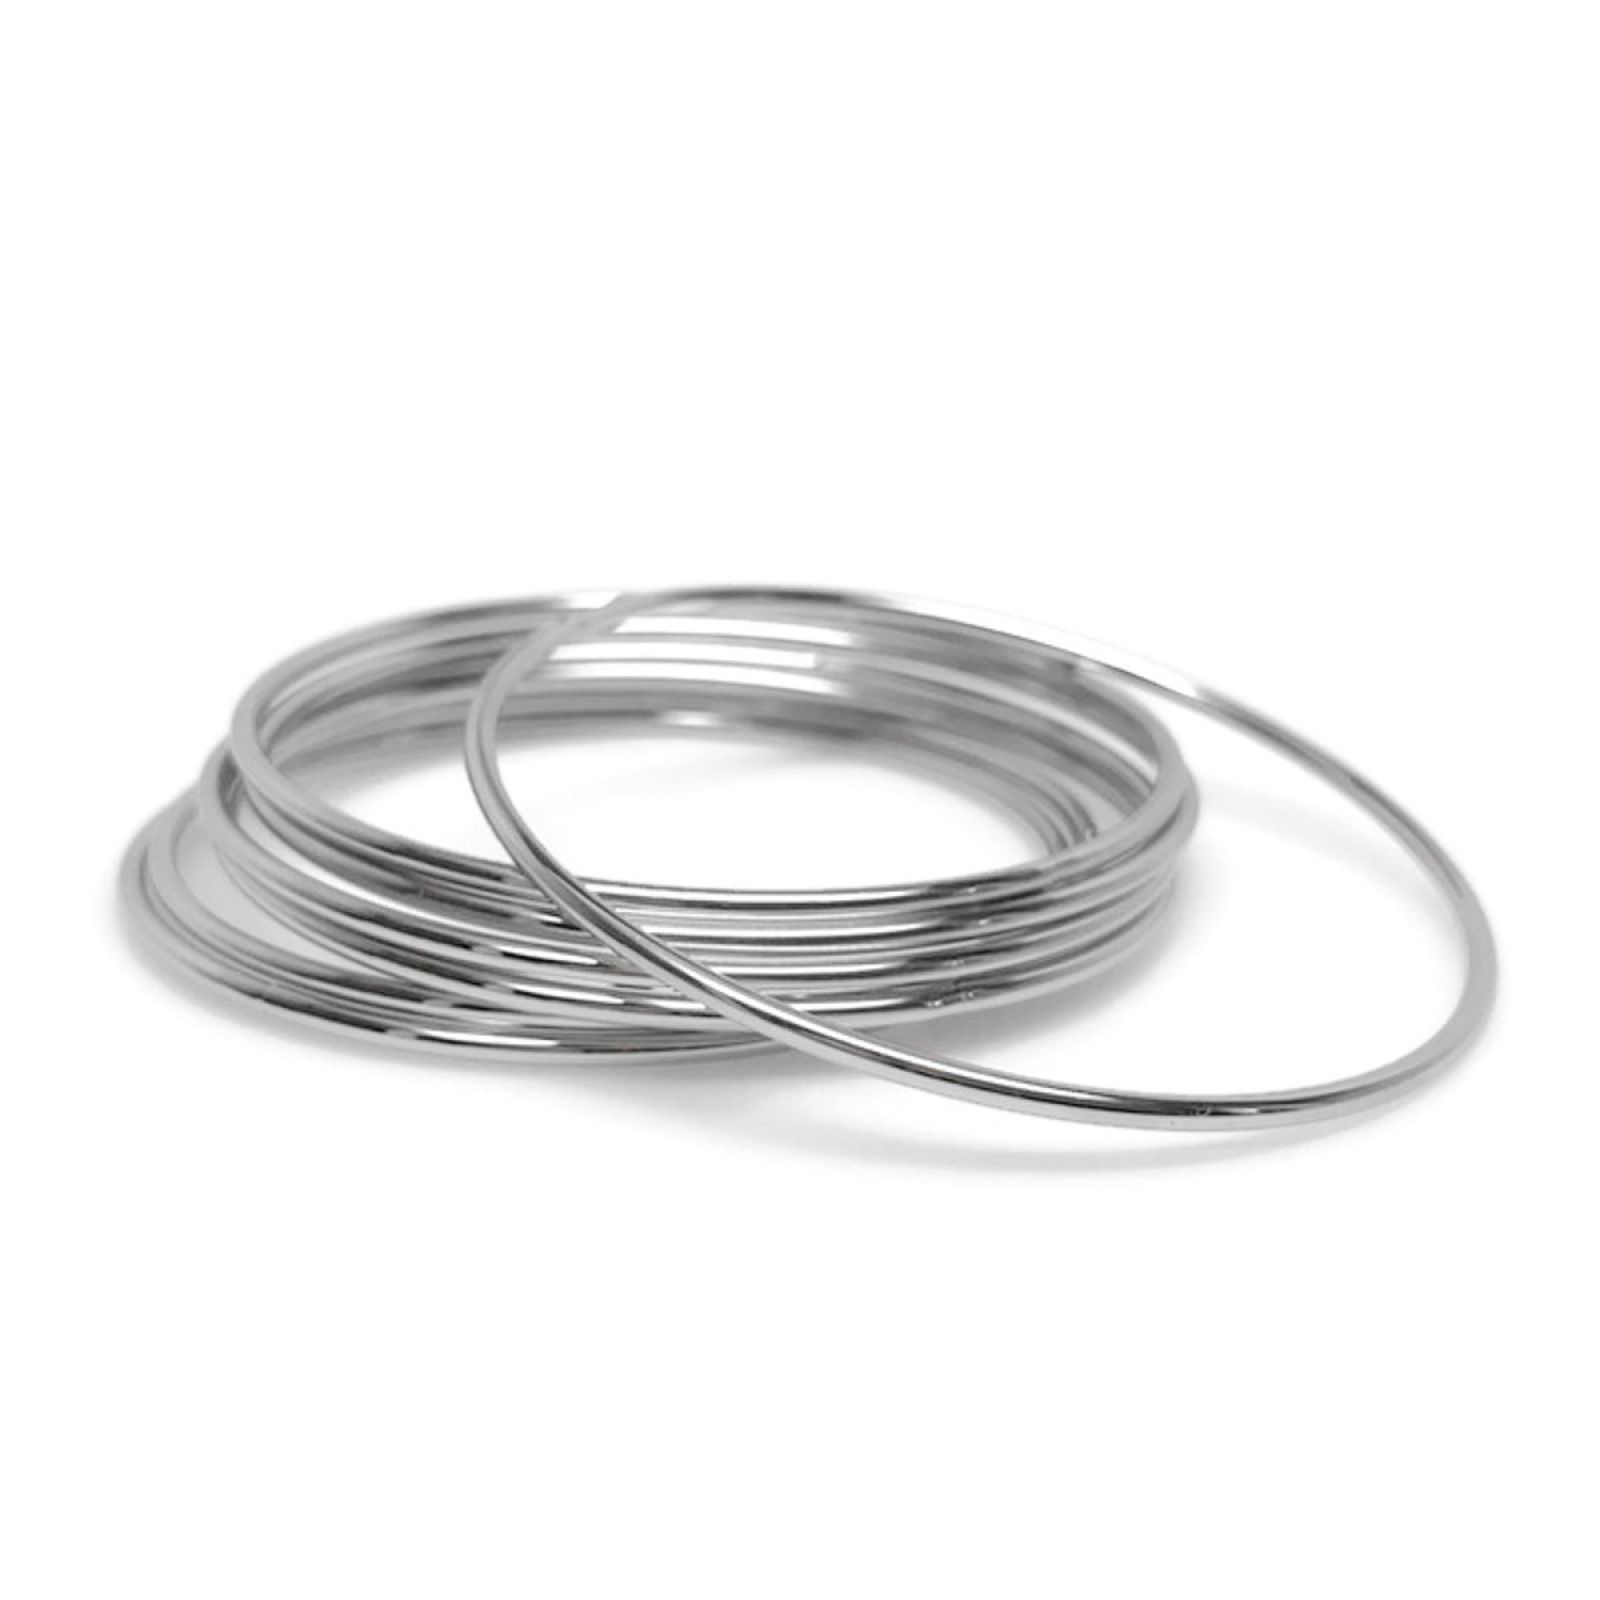 Jewelry Gift Idea For Mom Stackable Closed Thin Silver Bangle Bracelets